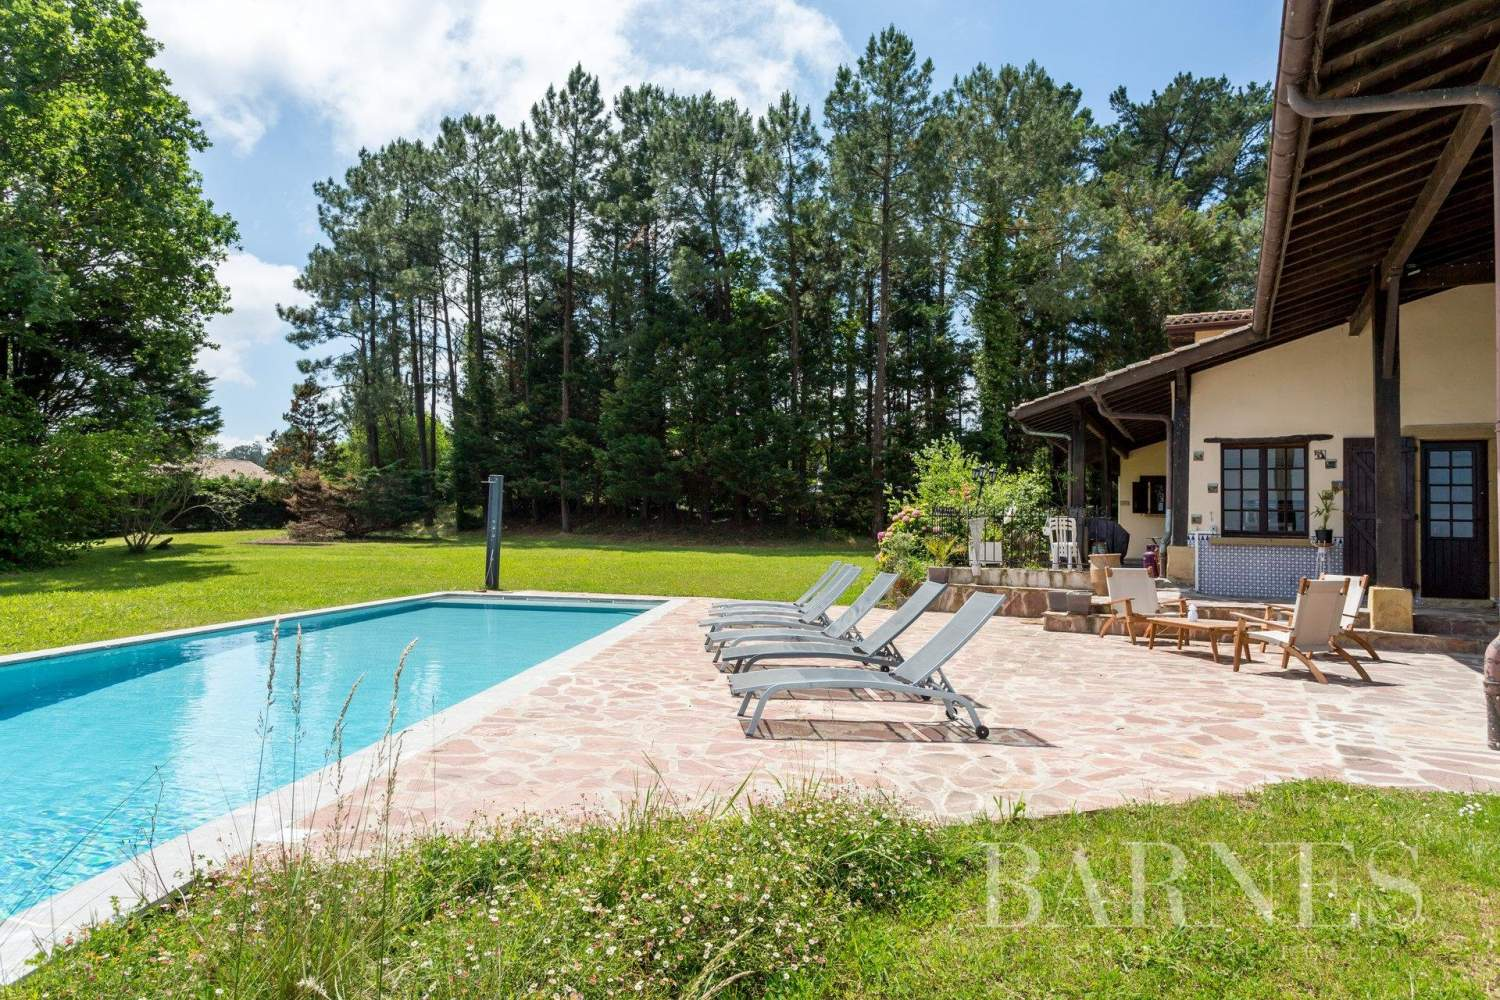 URRUGNE, LARGE HOUSE WITH A POOL AND MOUNTAINS VIEW, UP TO 17 PEOPLE picture 1